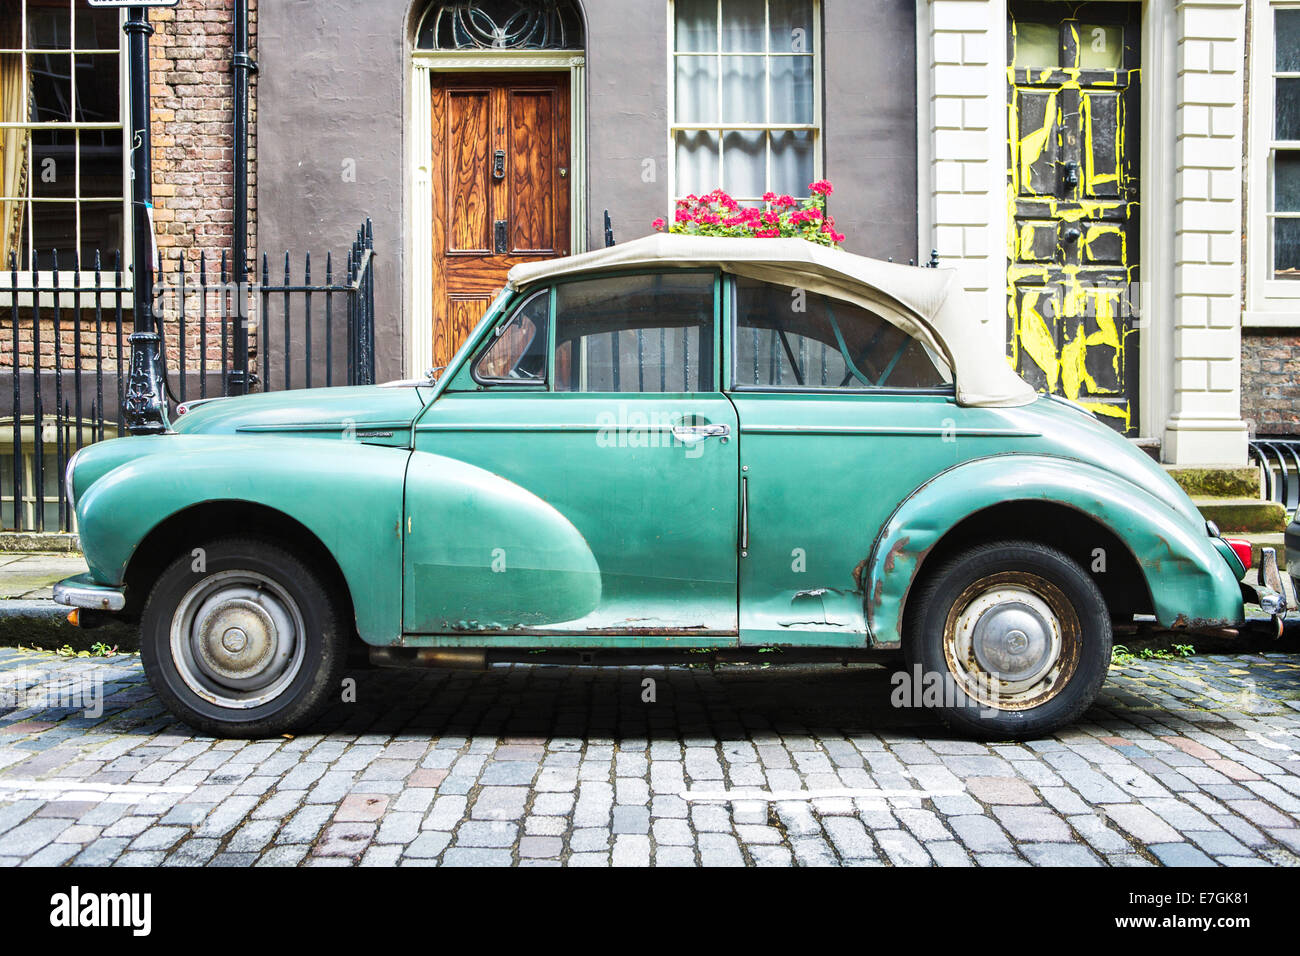 Morris Minor convertible (old British car vehicle), parked on a ...